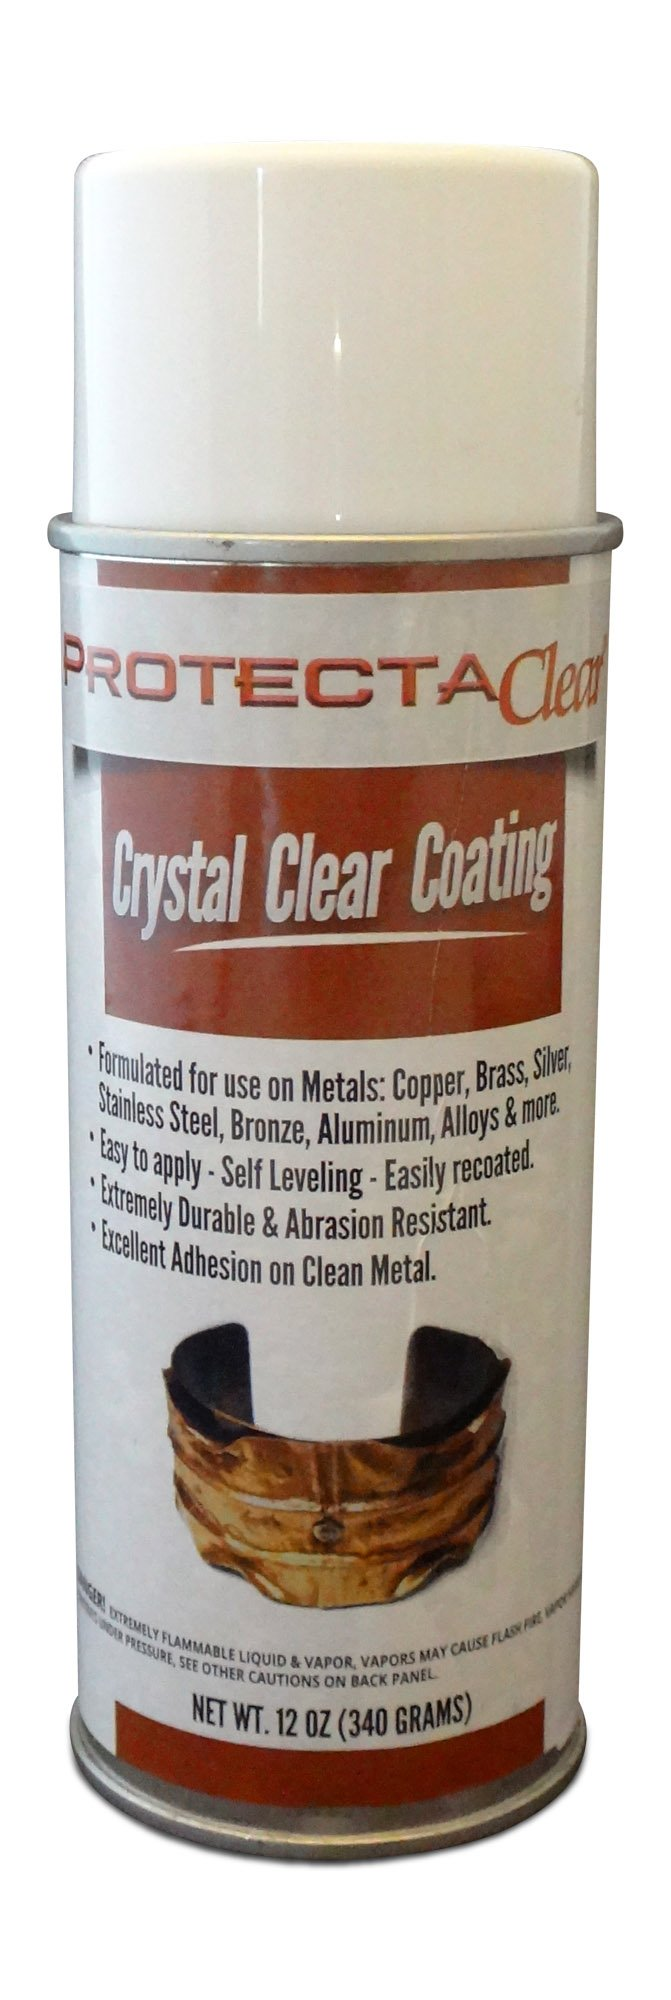 ProtectaClear 12 Oz. Clear Aerosal Can, Protective Coating for Metal (Net Weight)